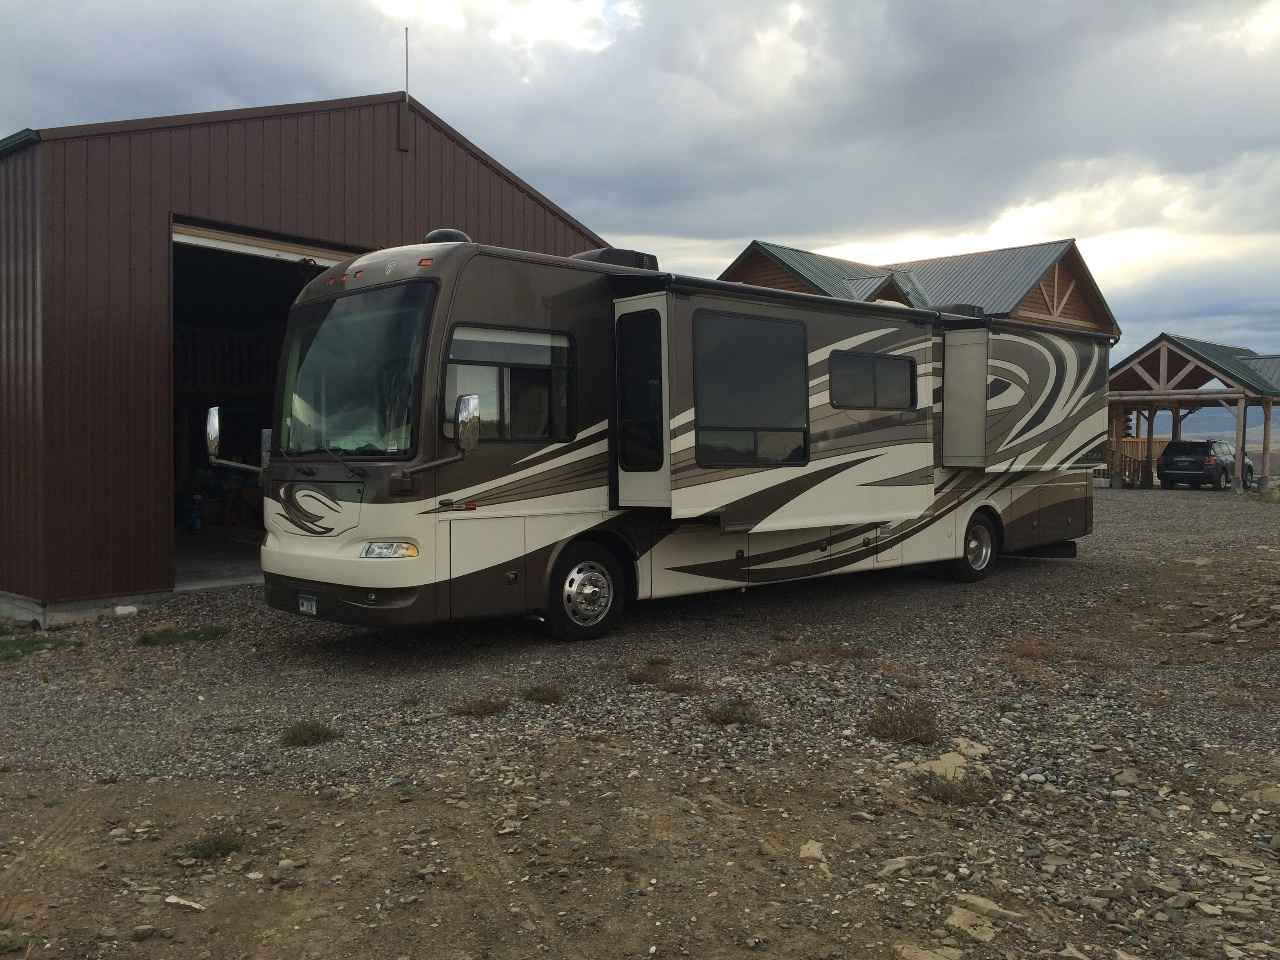 2012 Used Thor Motor Coach Astoria Class A In Montana Mt